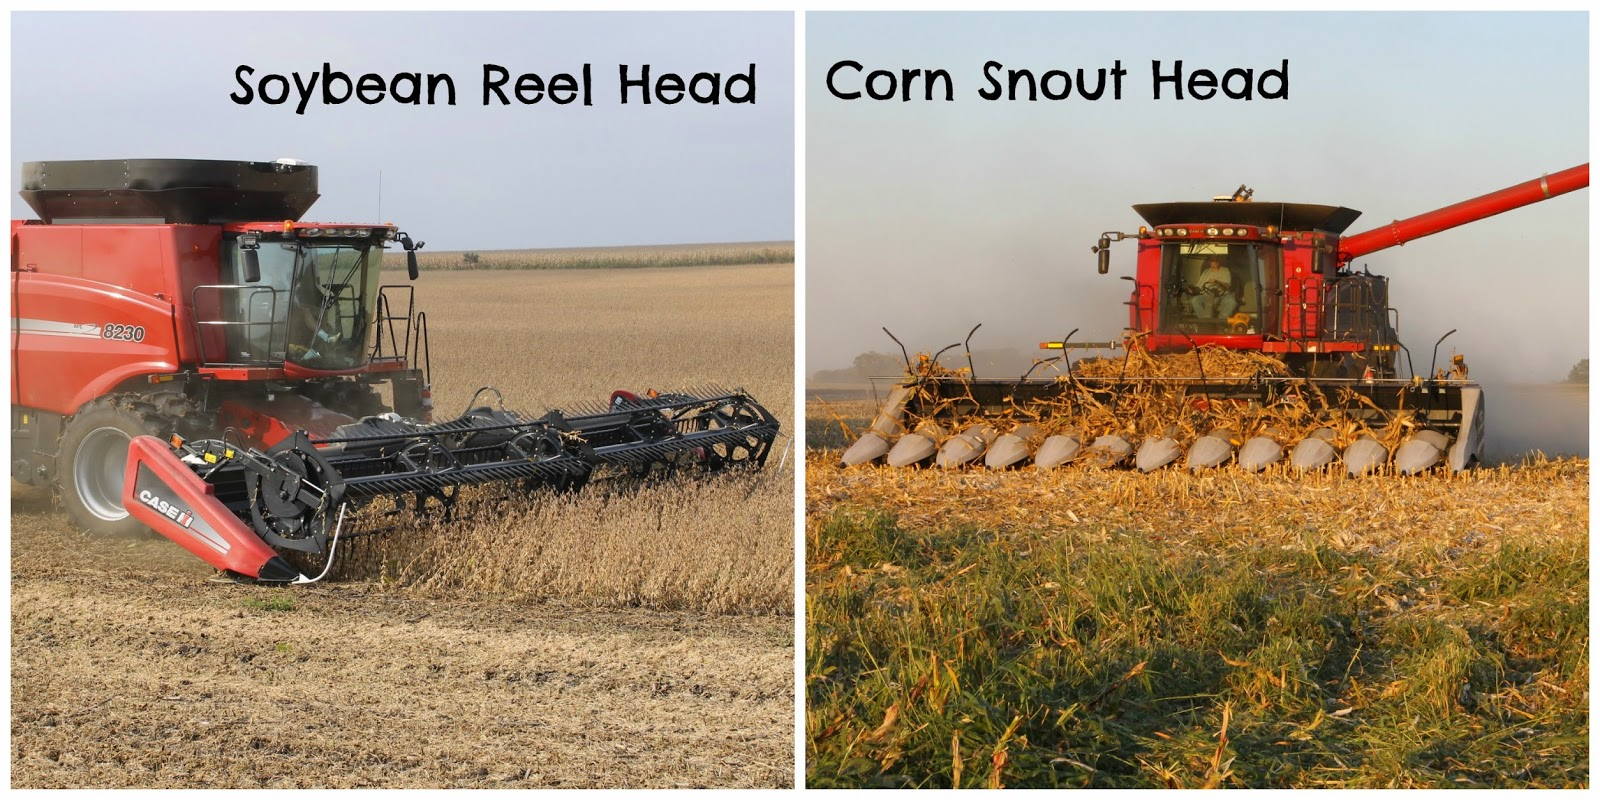 Soybean and Corn Harvest Headers